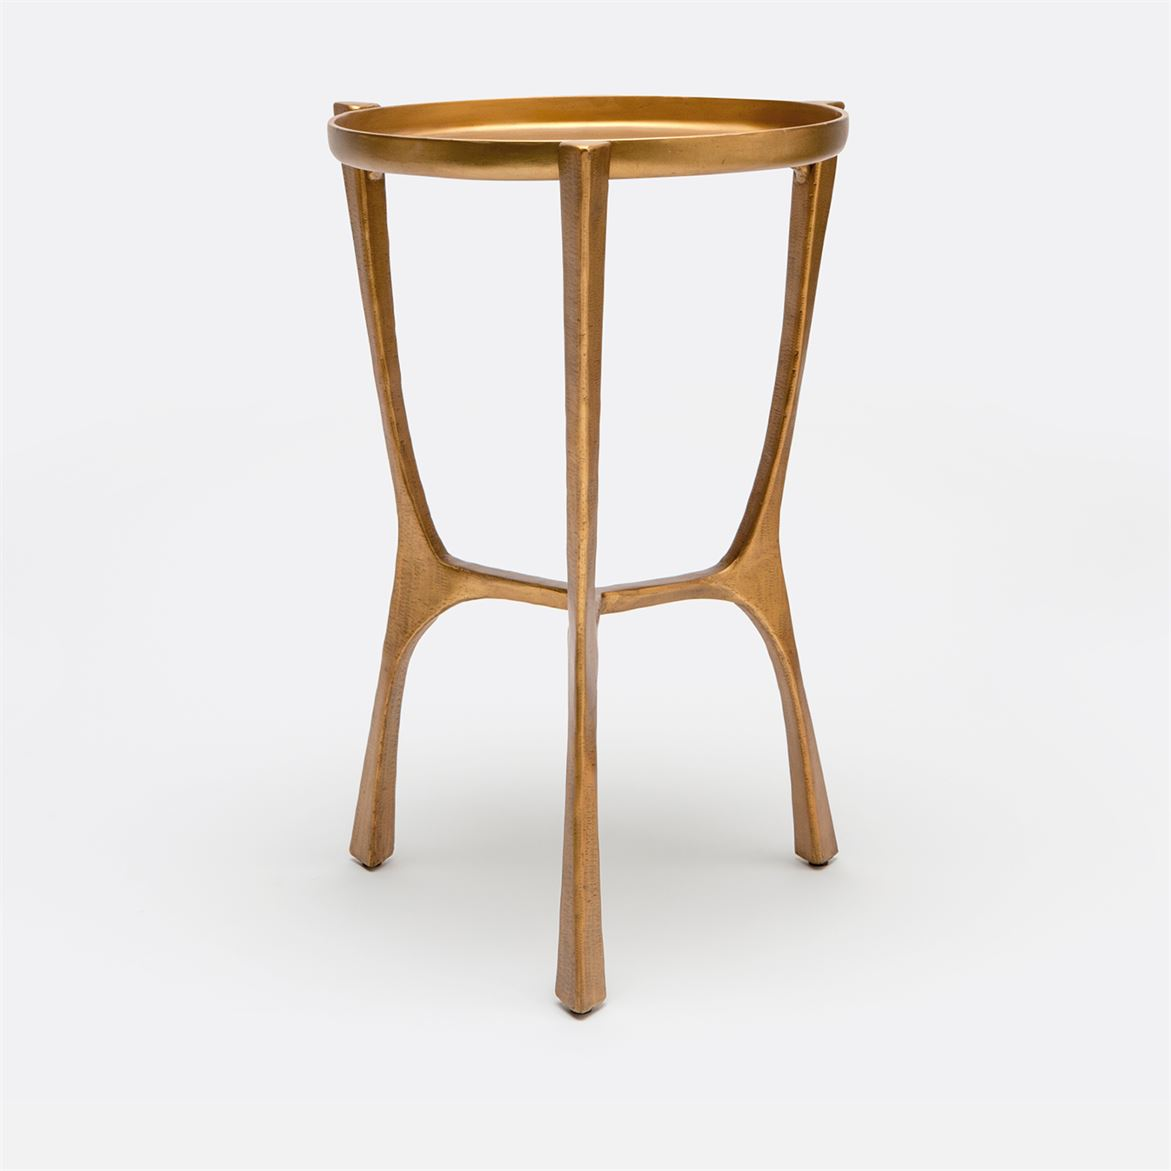 made goods furaddisostabr accent table with removable tray espresso colored end tables umbrella battery reading lamp tile floor threshold pier imports coffee cordless lamps